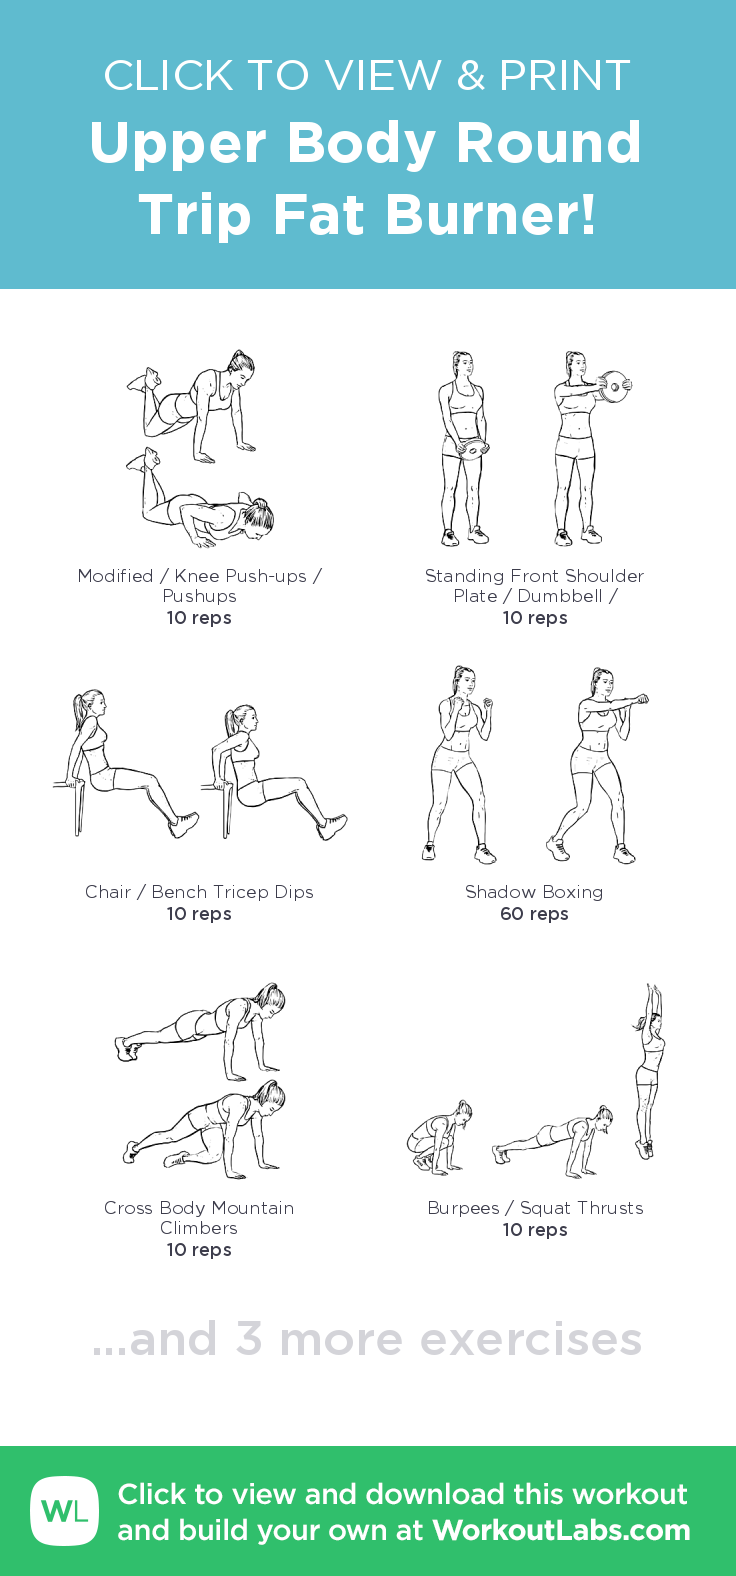 Upper Body Round Trip Fat Burner! –click to view and print this illustrated exercise…